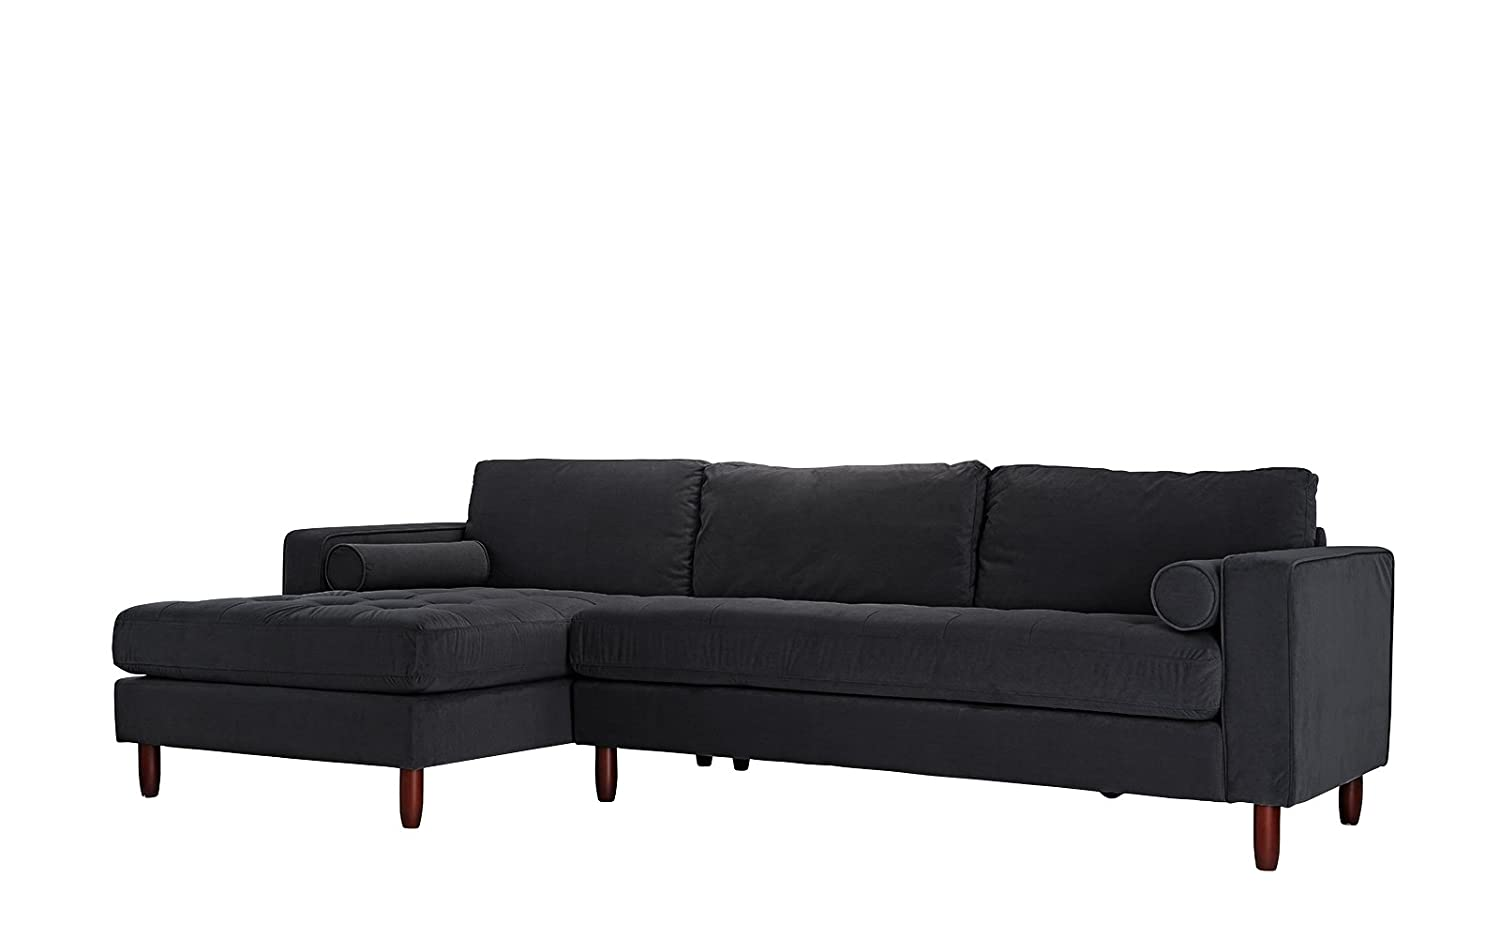 Divano Roma Furniture Mid-Century Modern Tufted Velvet Sectional Sofa,  L-Shape Couch with Extra Wide Chaise Lounge (Black)